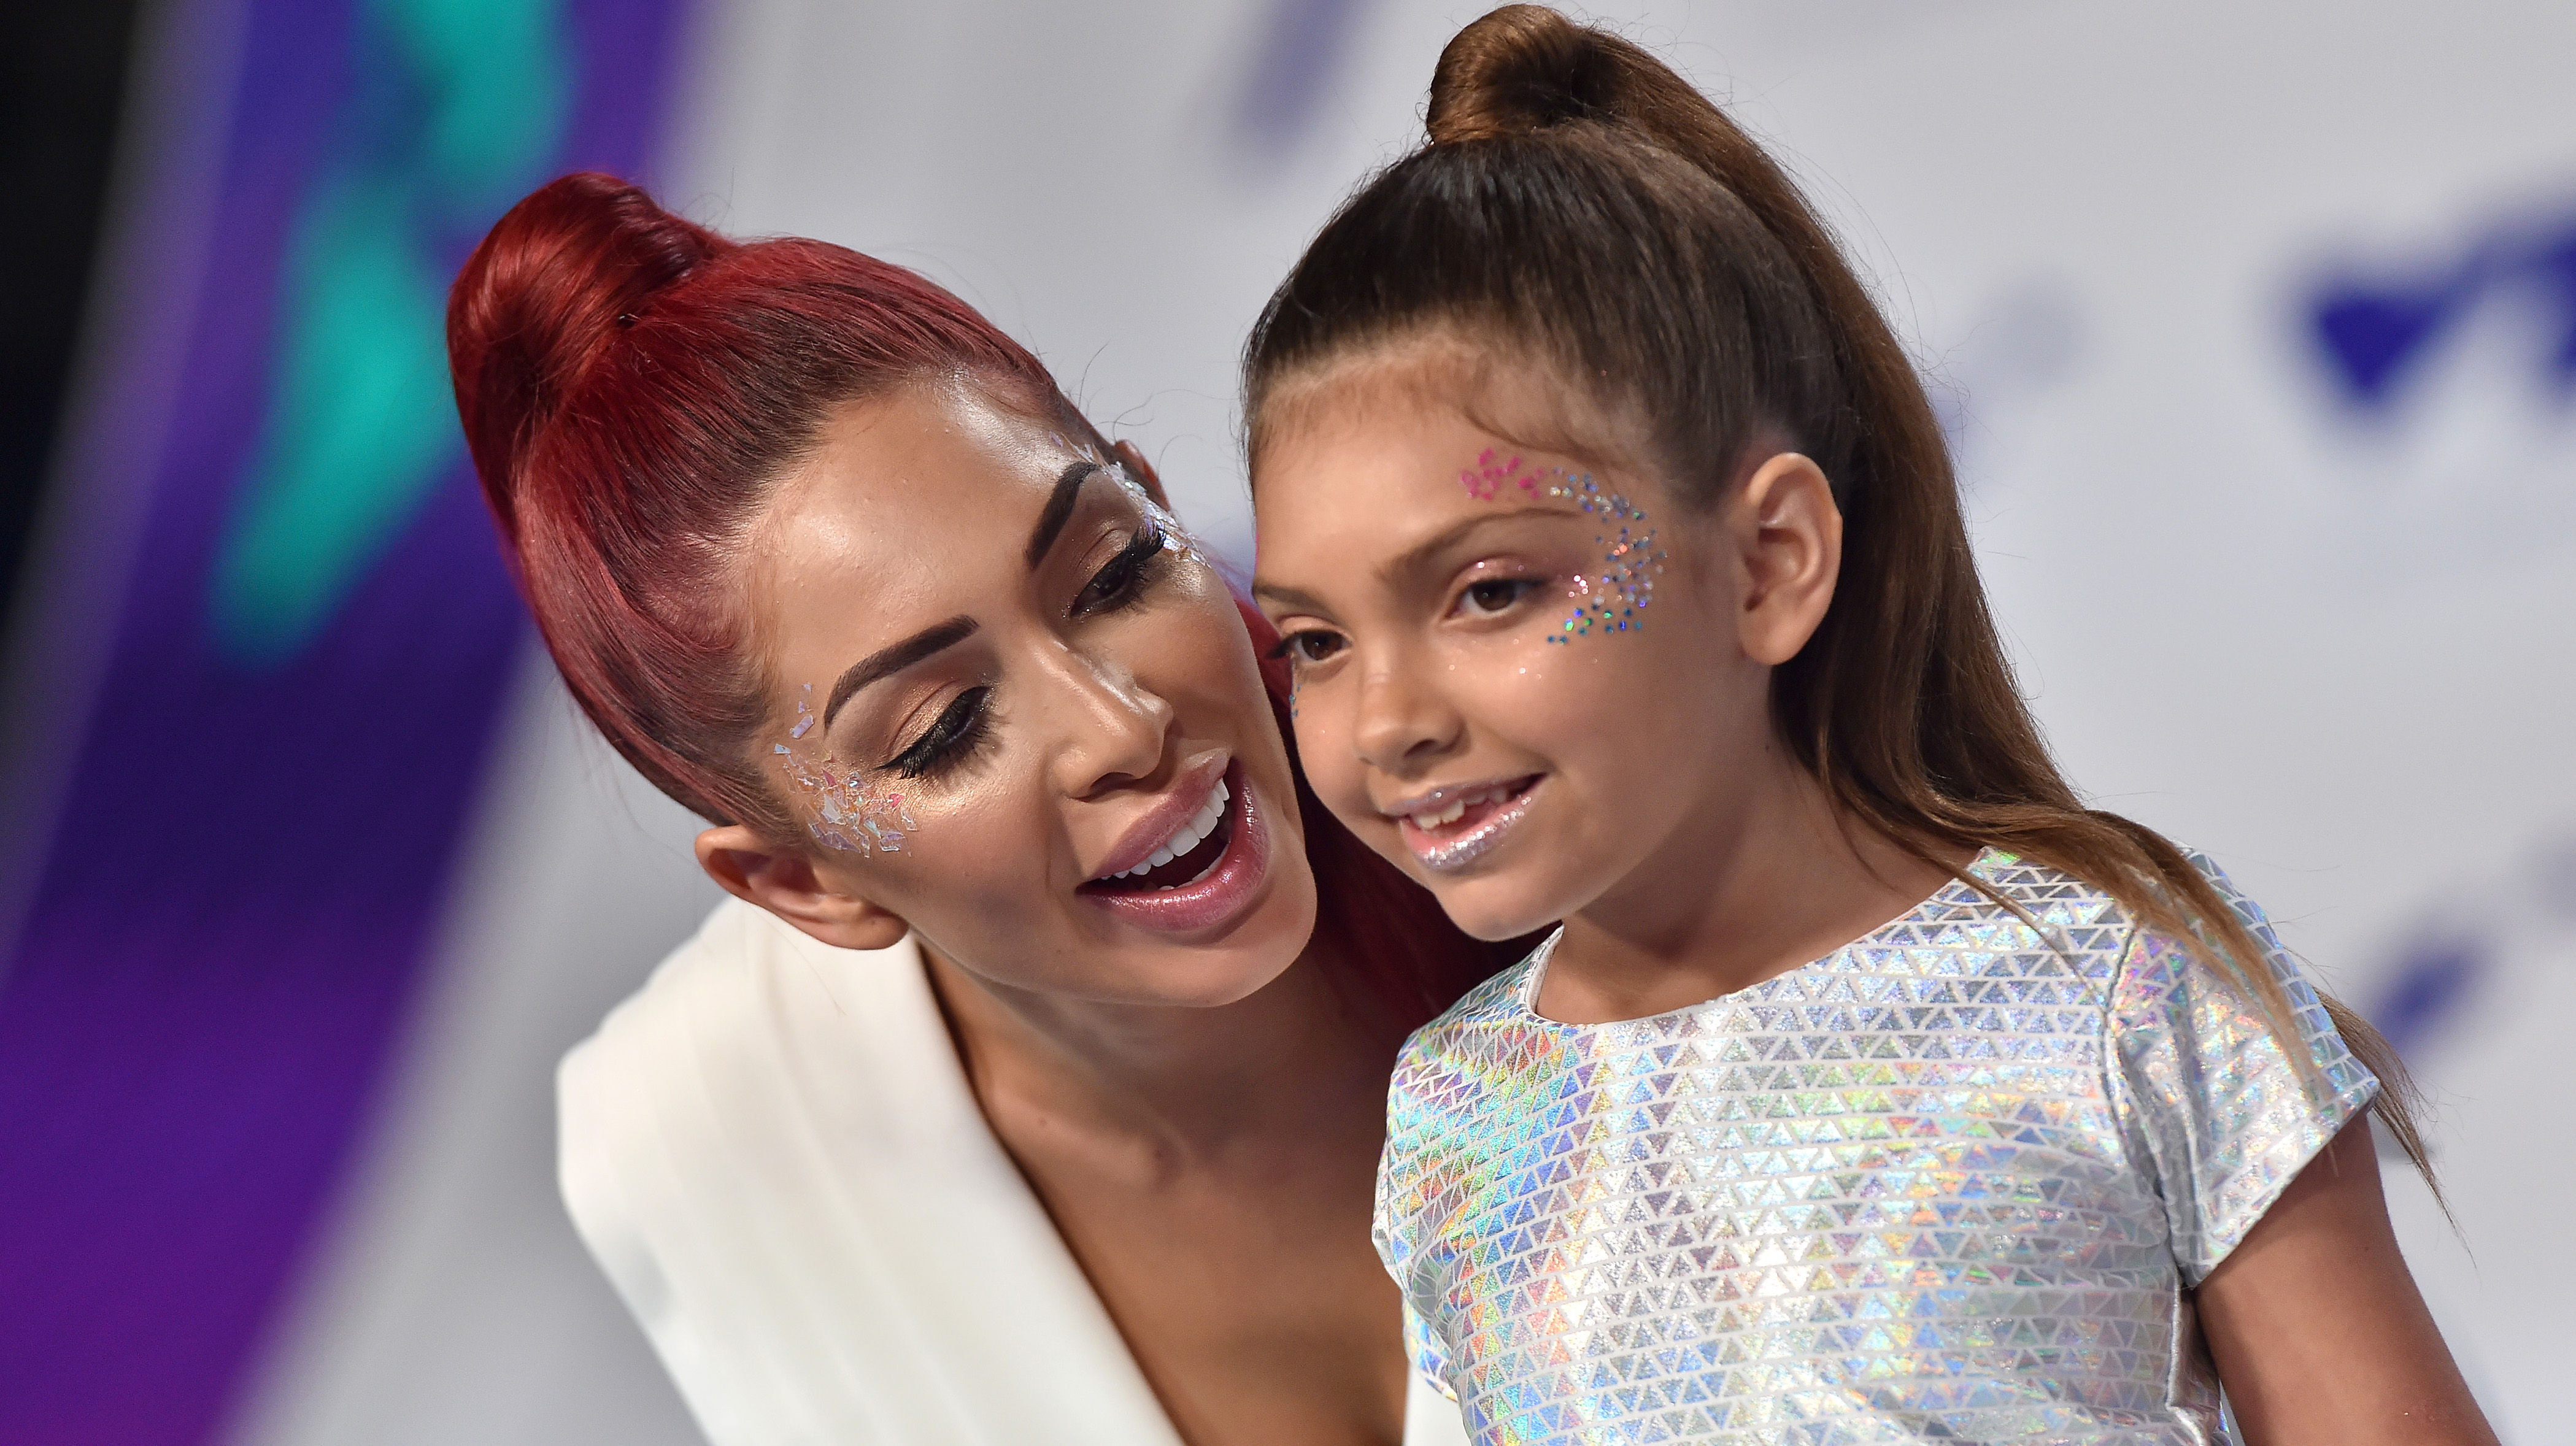 Teen Mom Farrah Abraham and daughter have nude photos of